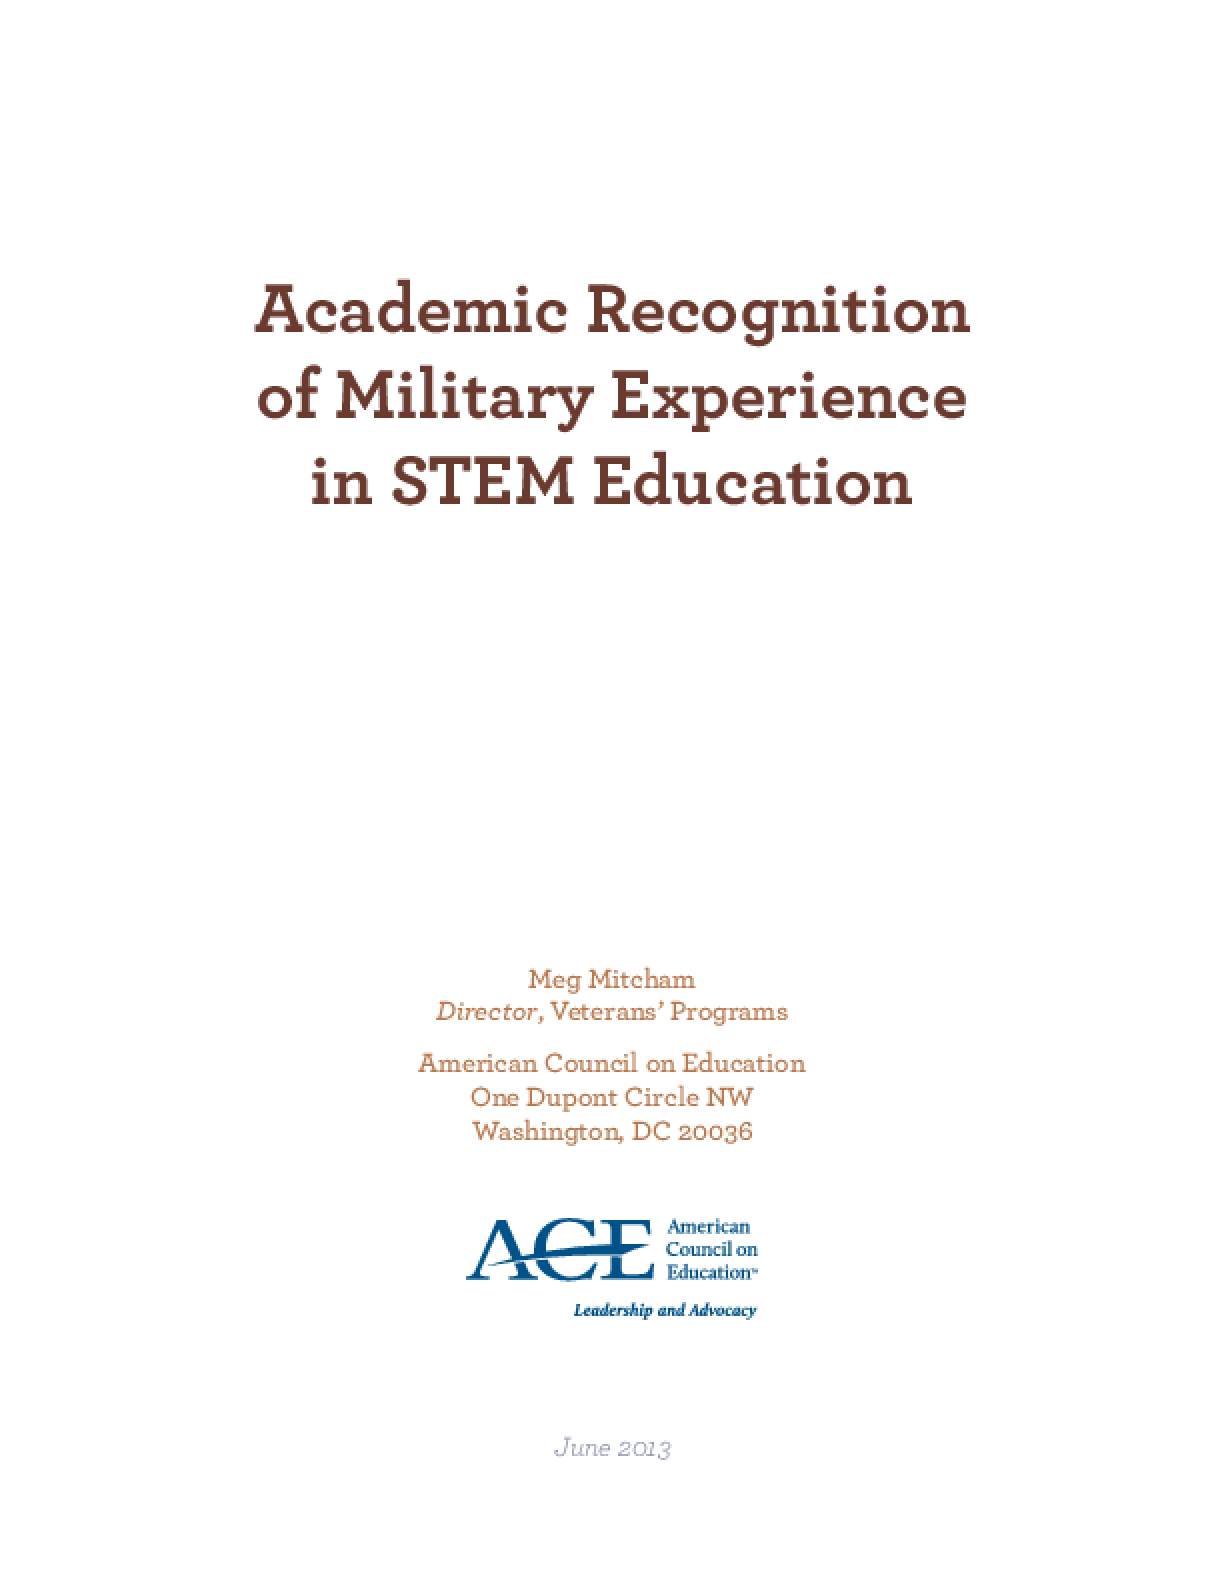 Academic Recognition of Military Experience in STEM Education